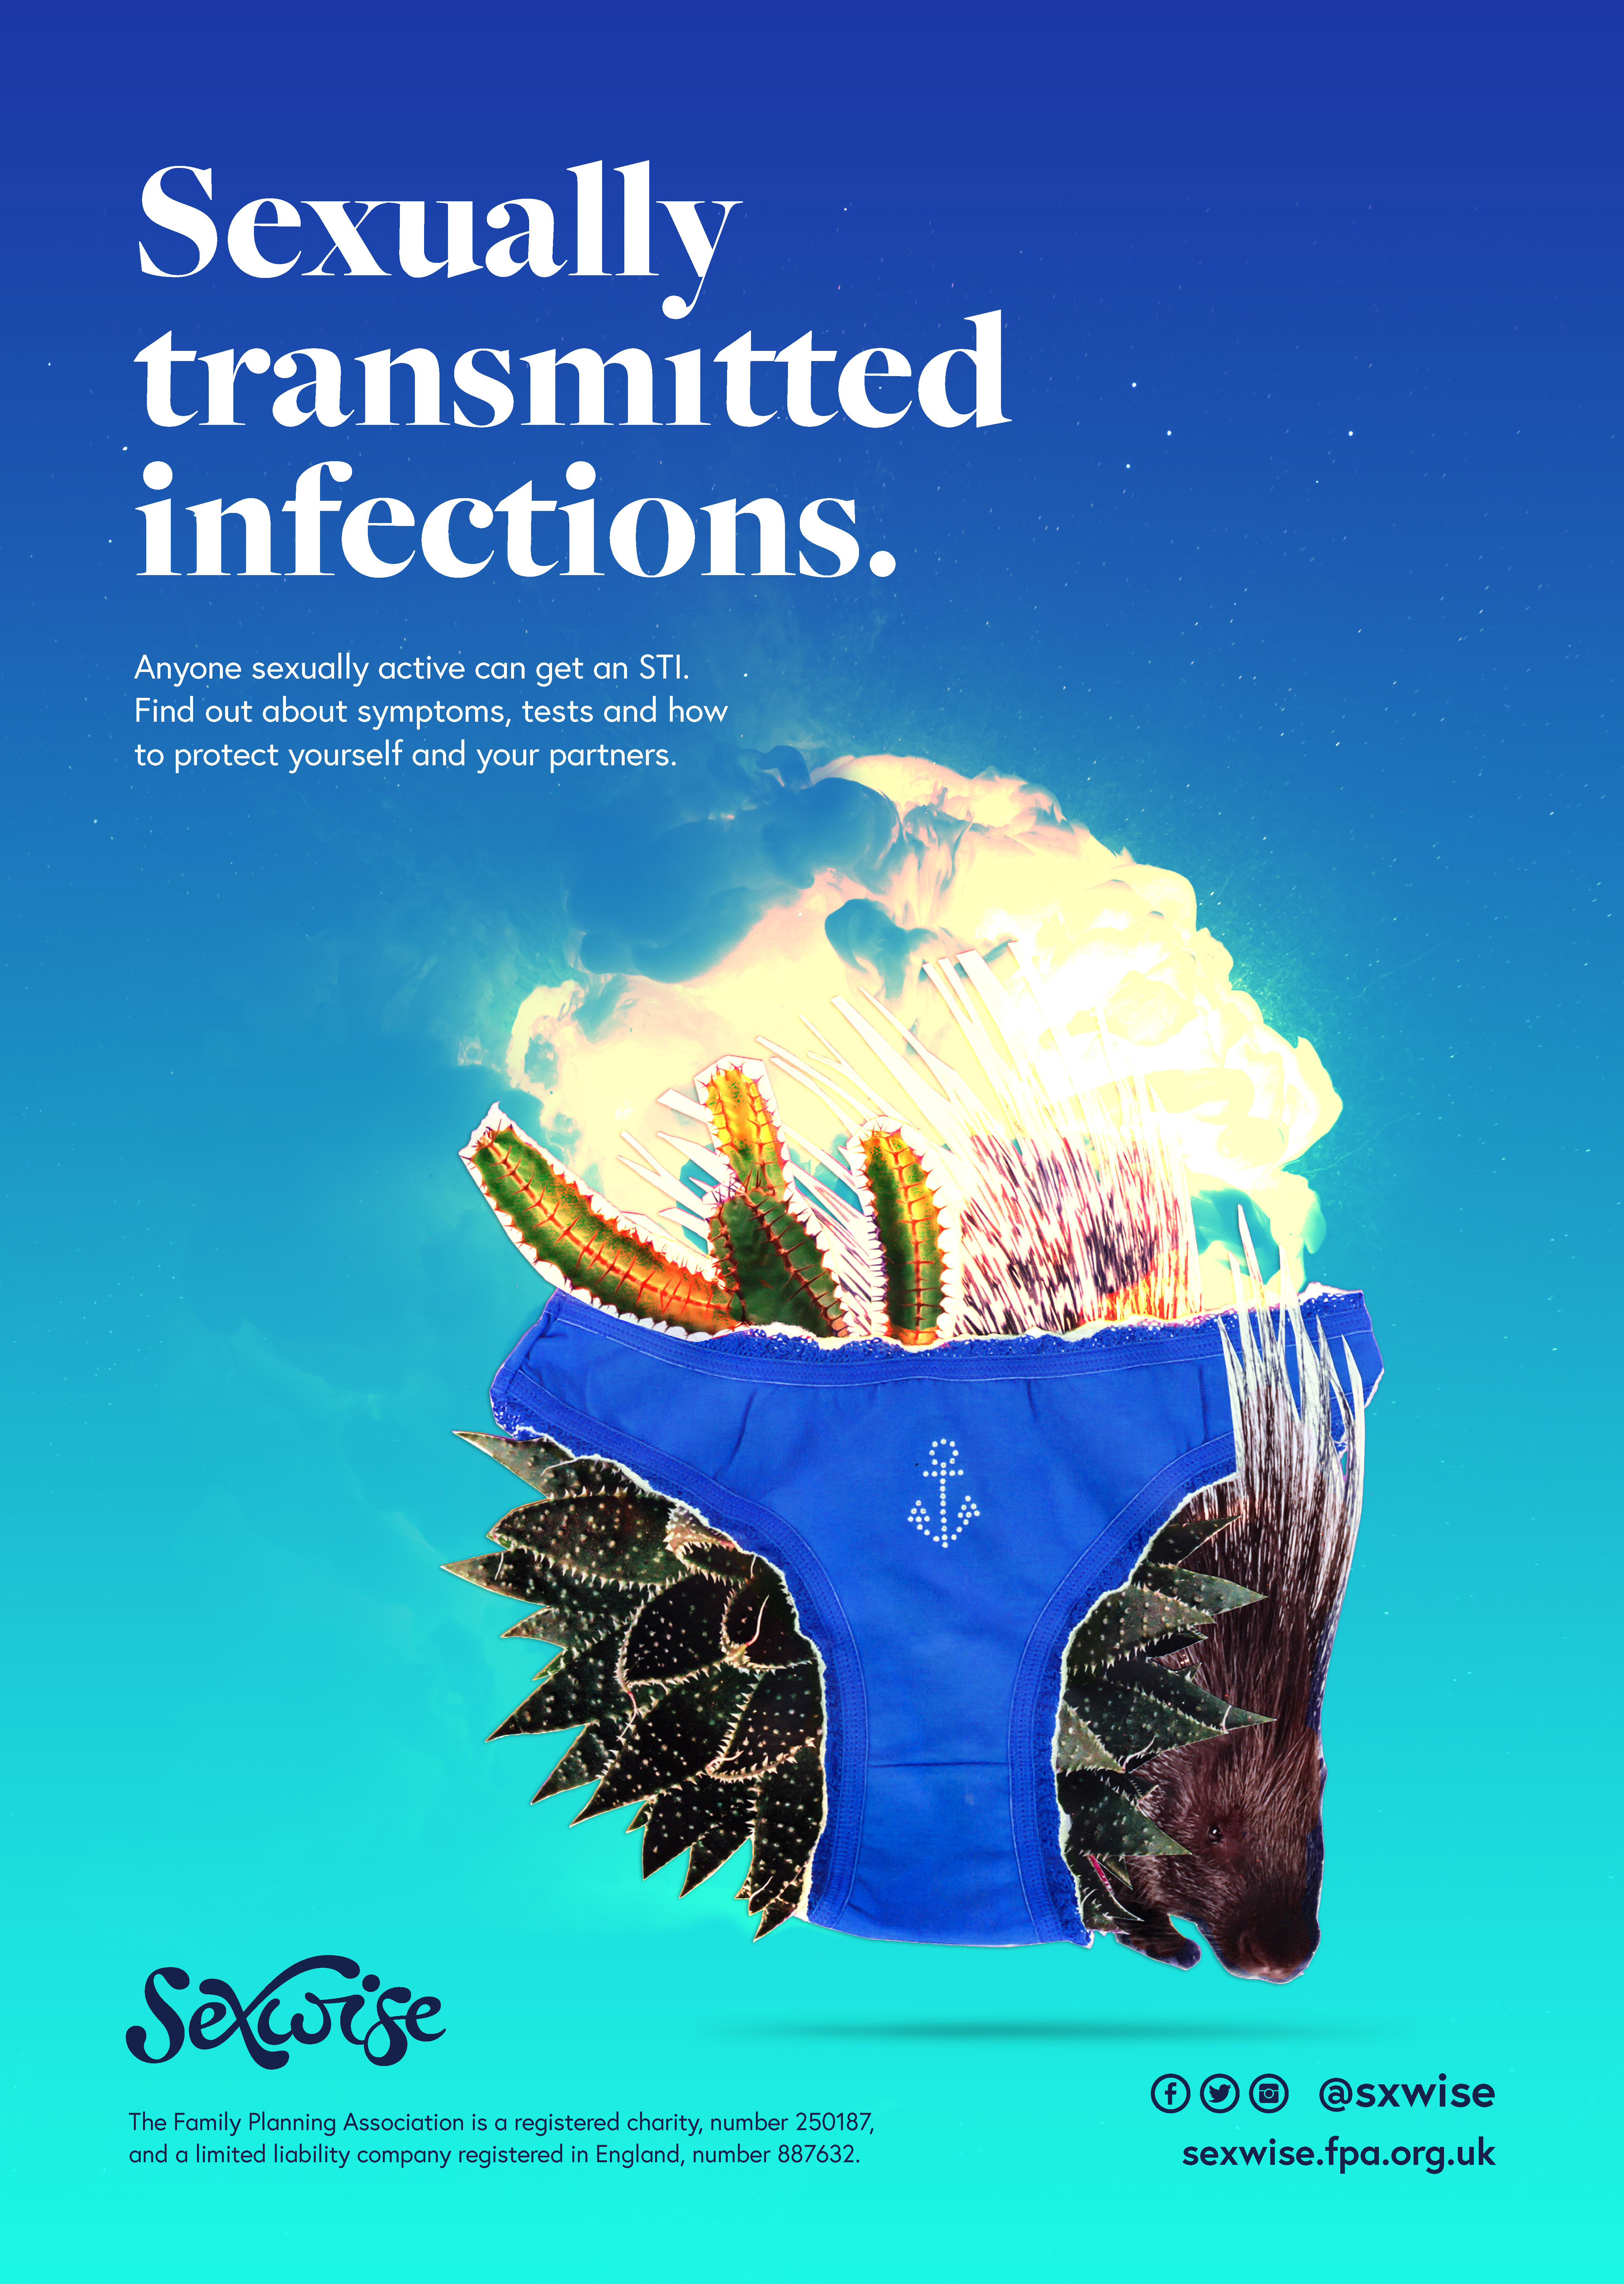 Sexwise sexually transmitted infections poster